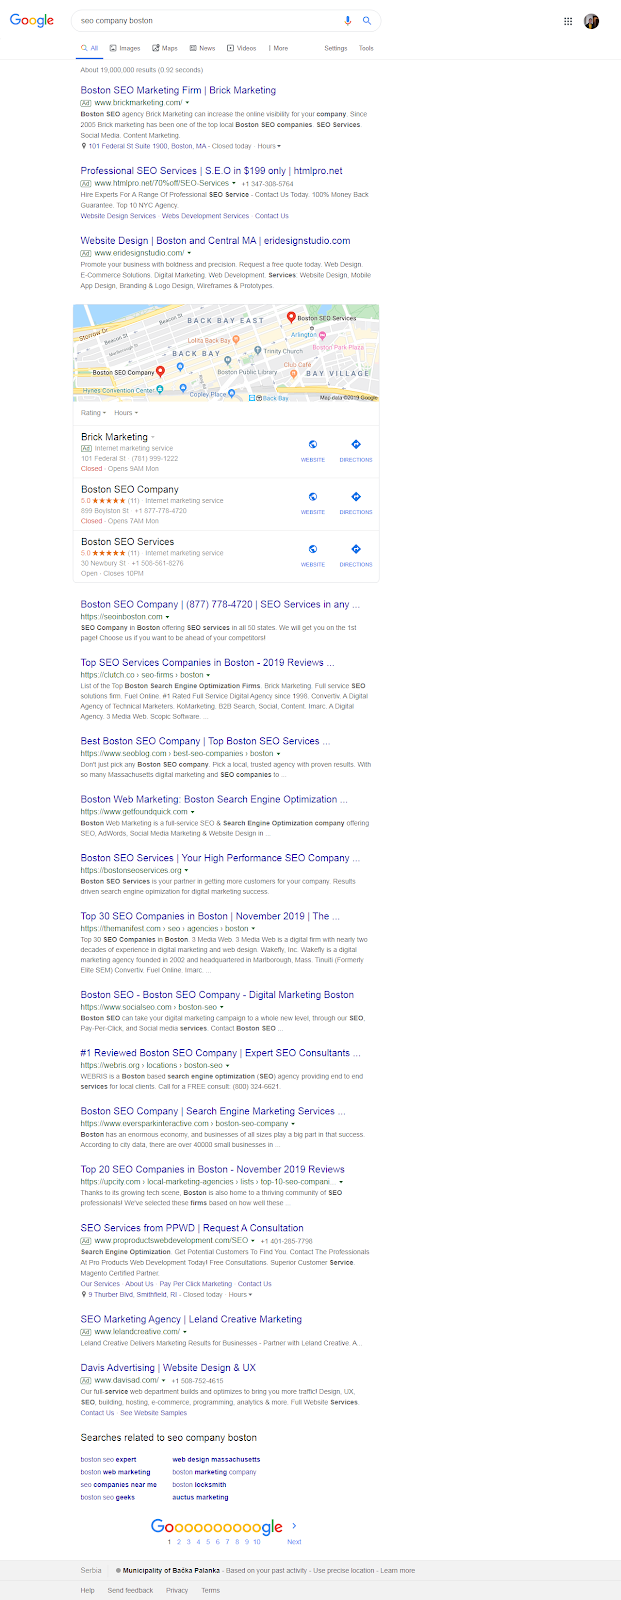 searching for potential freelance writing clients on google